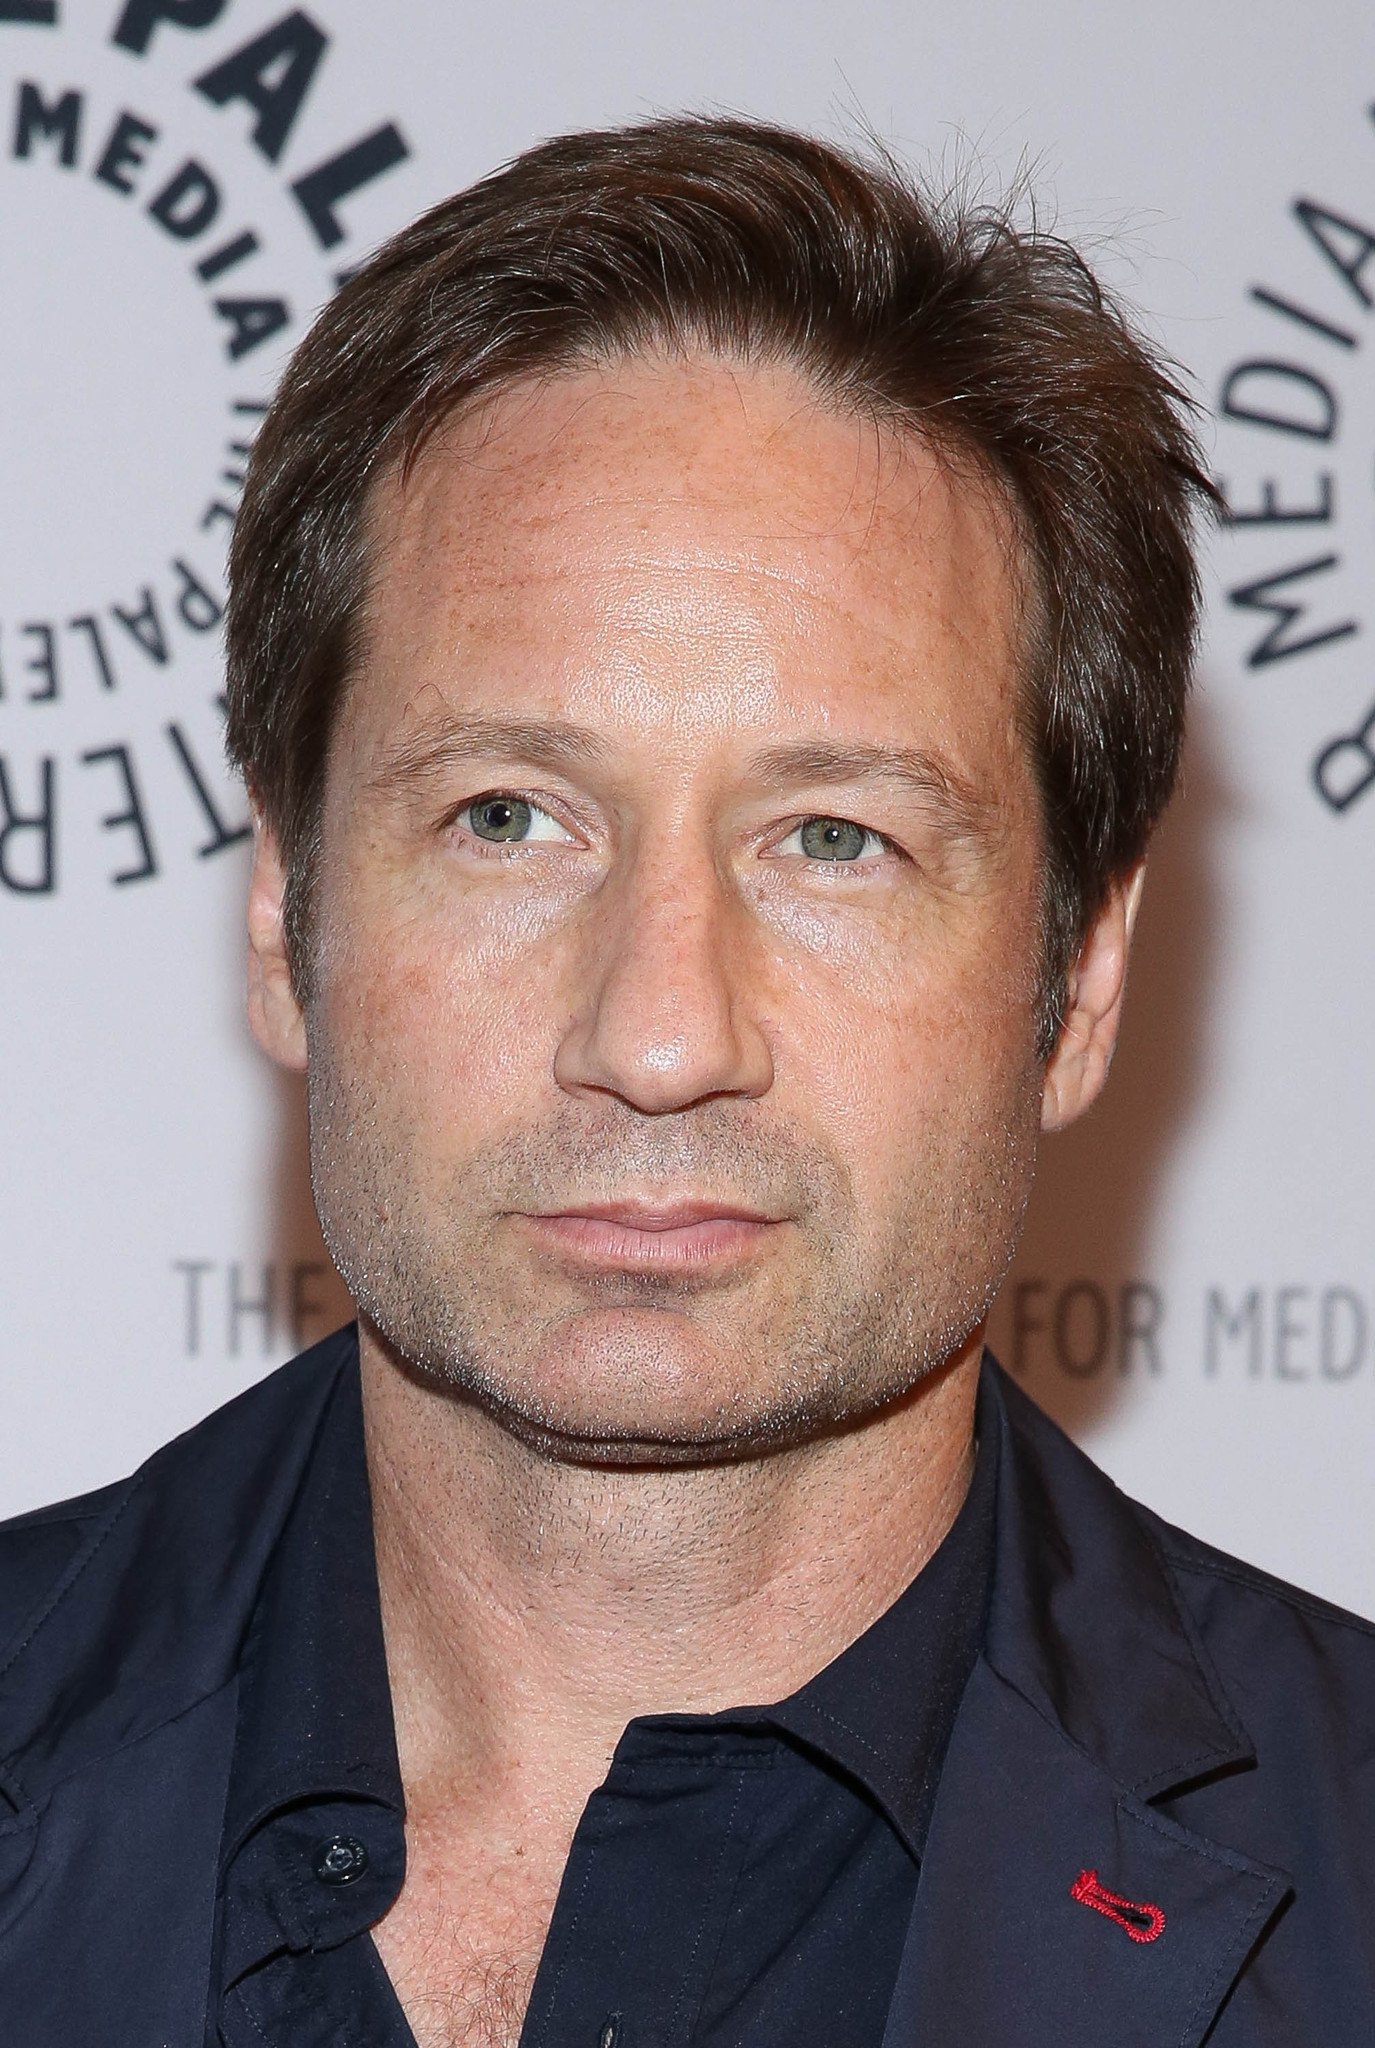 David Duchovny at an event for The X Files (1993)